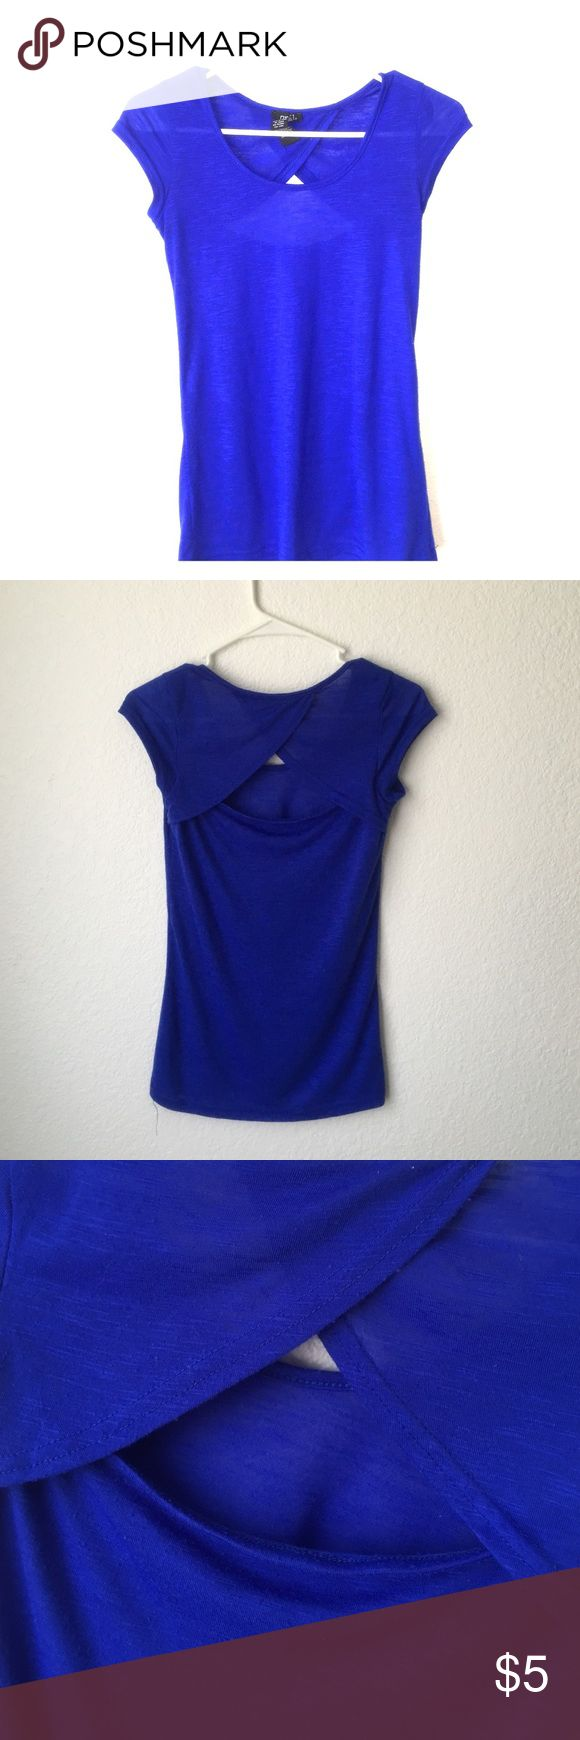 Blue tee Blue tee from rue21 with slights opening in the back. This shirt was only worn a few times and is in perfect condition. Rue 21 Tops Tees - Short Sleeve